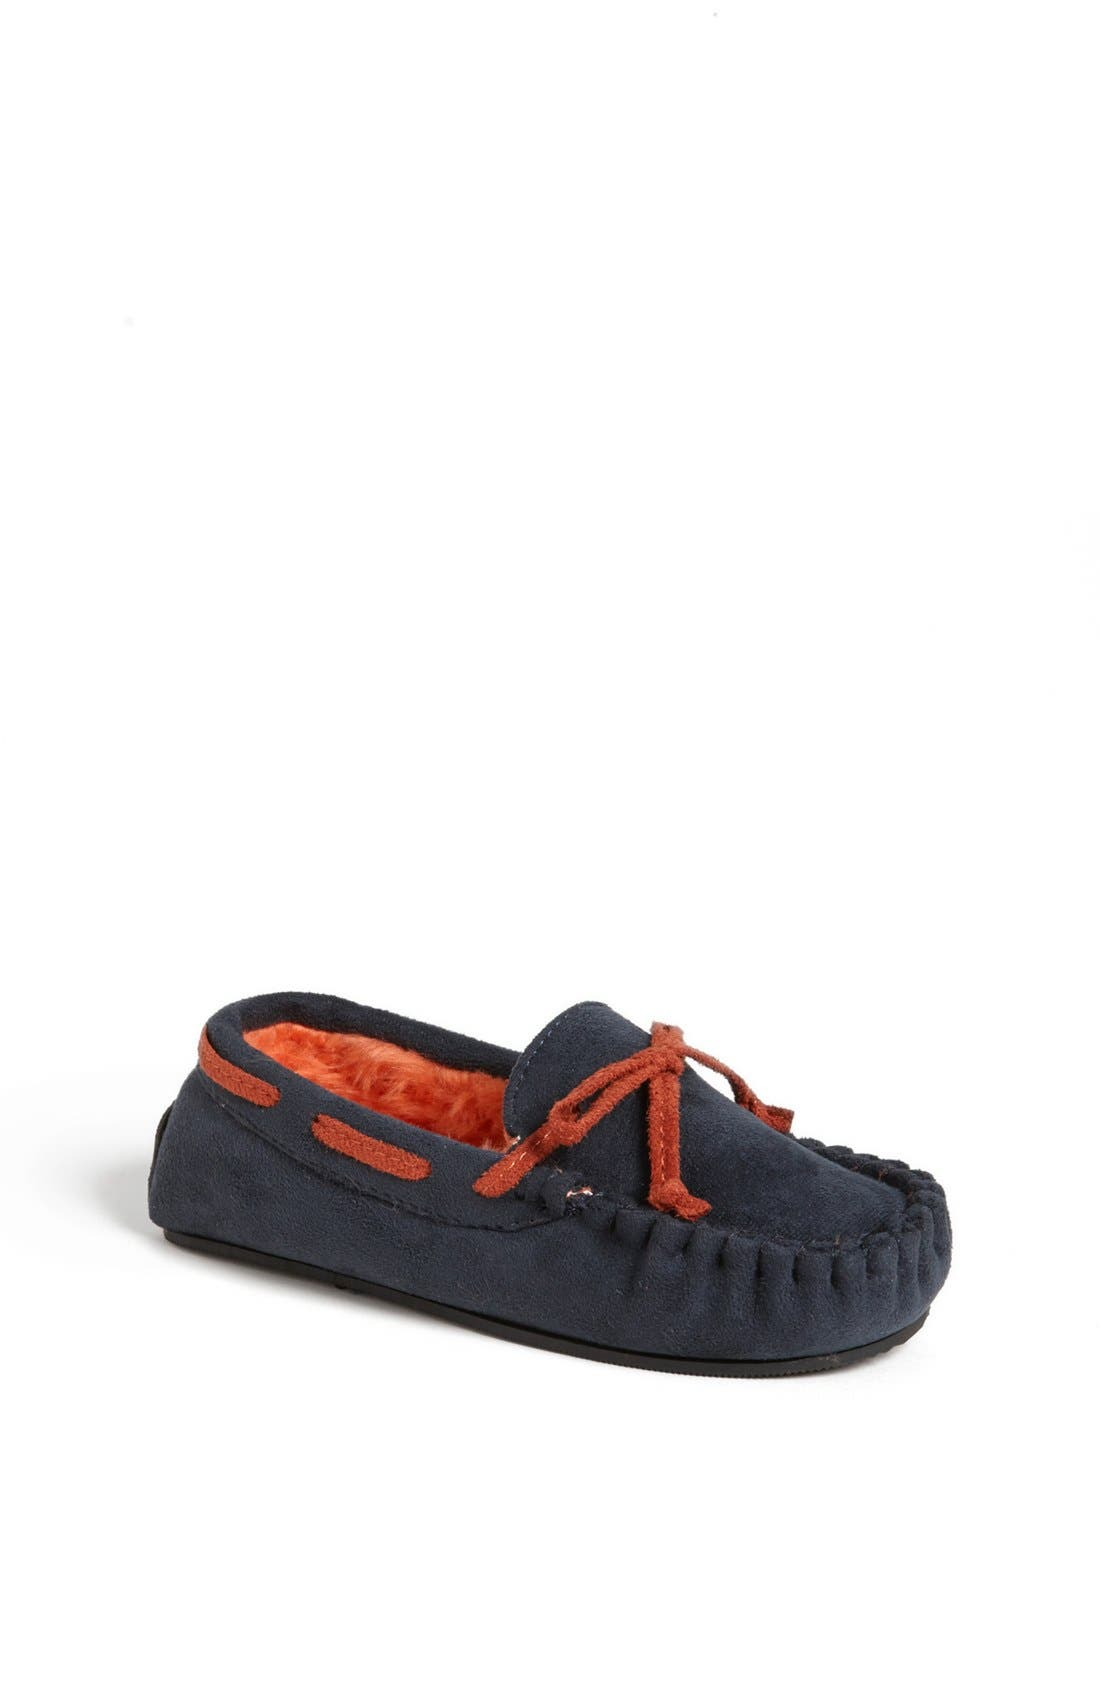 Alternate Image 1 Selected - Stride Rite Moc Stitched Slippers (Toddler & Little Kid)